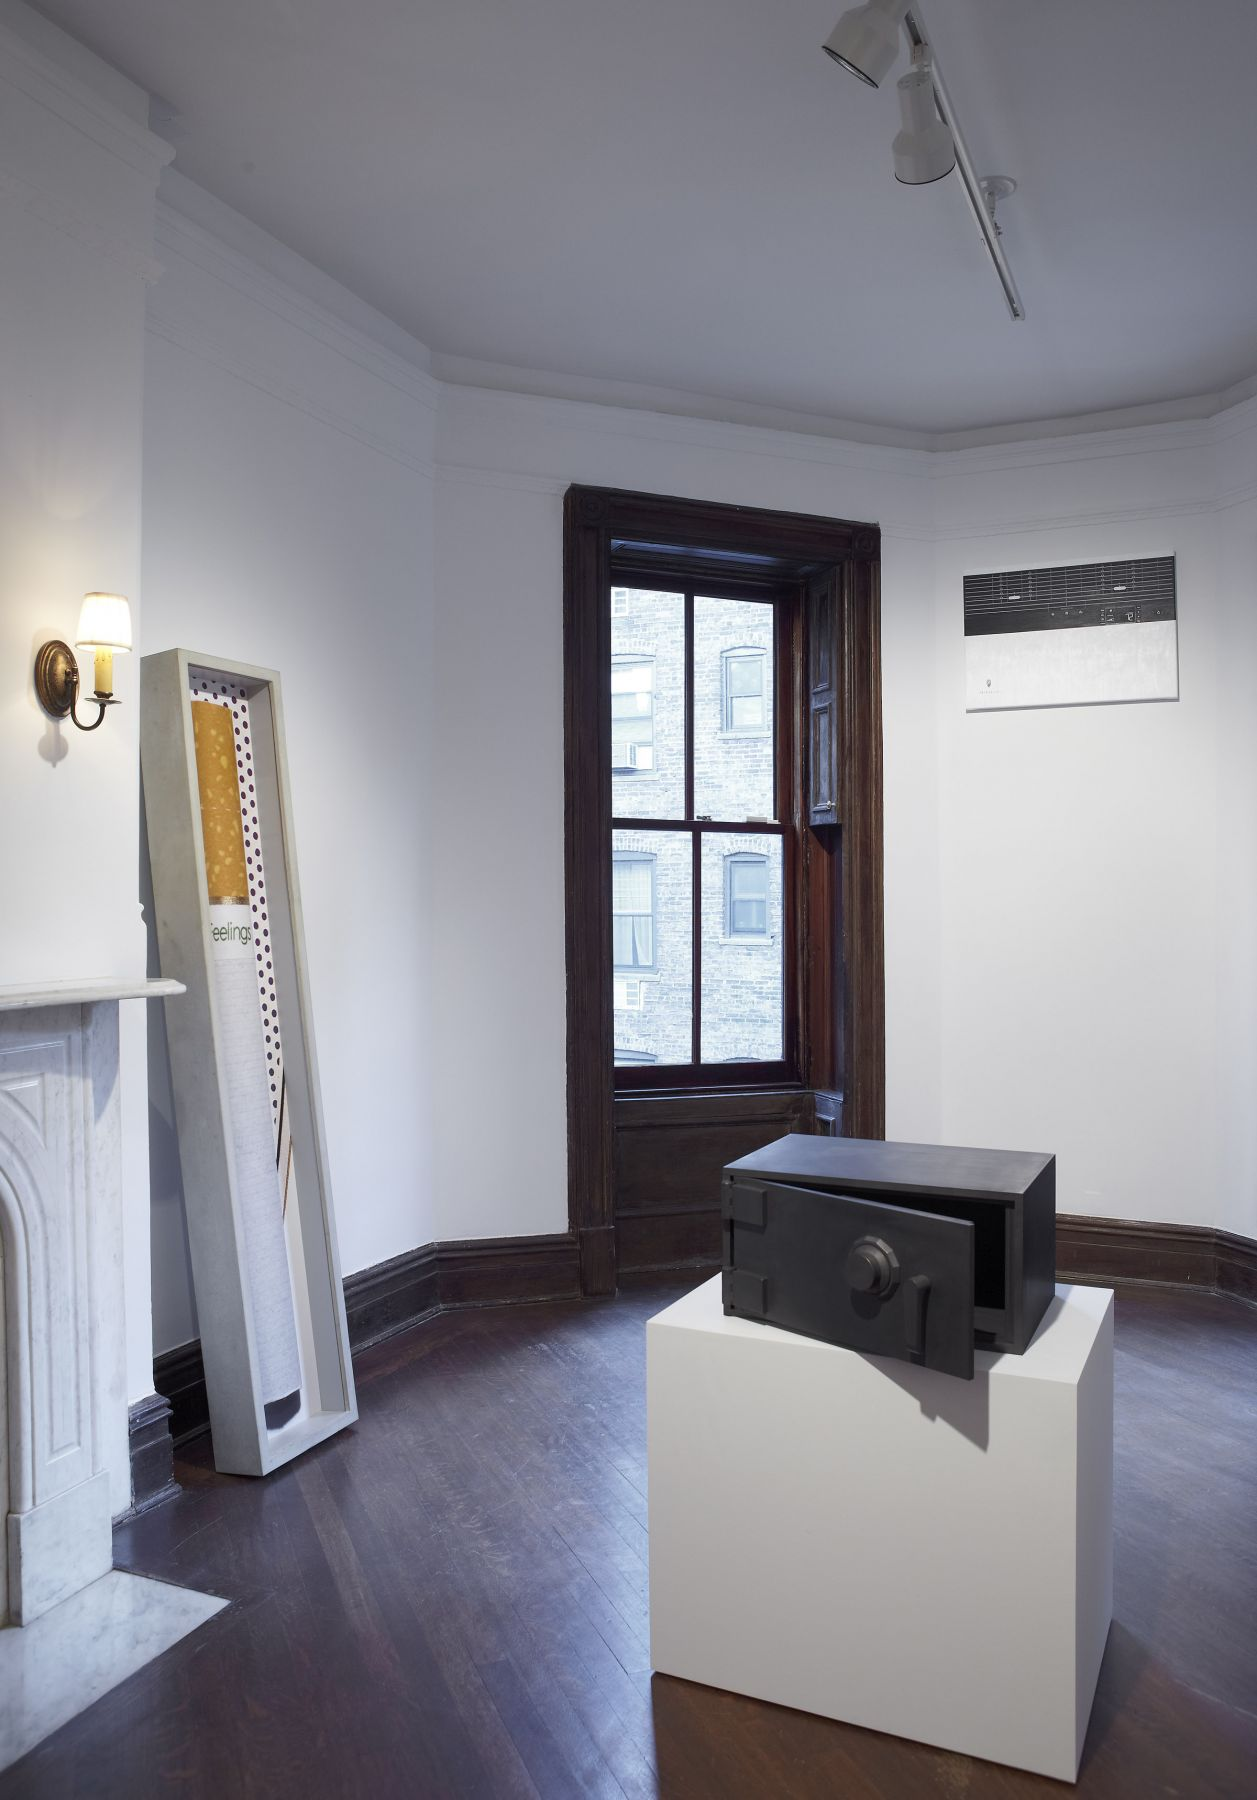 A Real Slow Drag(Installation View), Marianne Boesky Gallery, Uptown, 2011